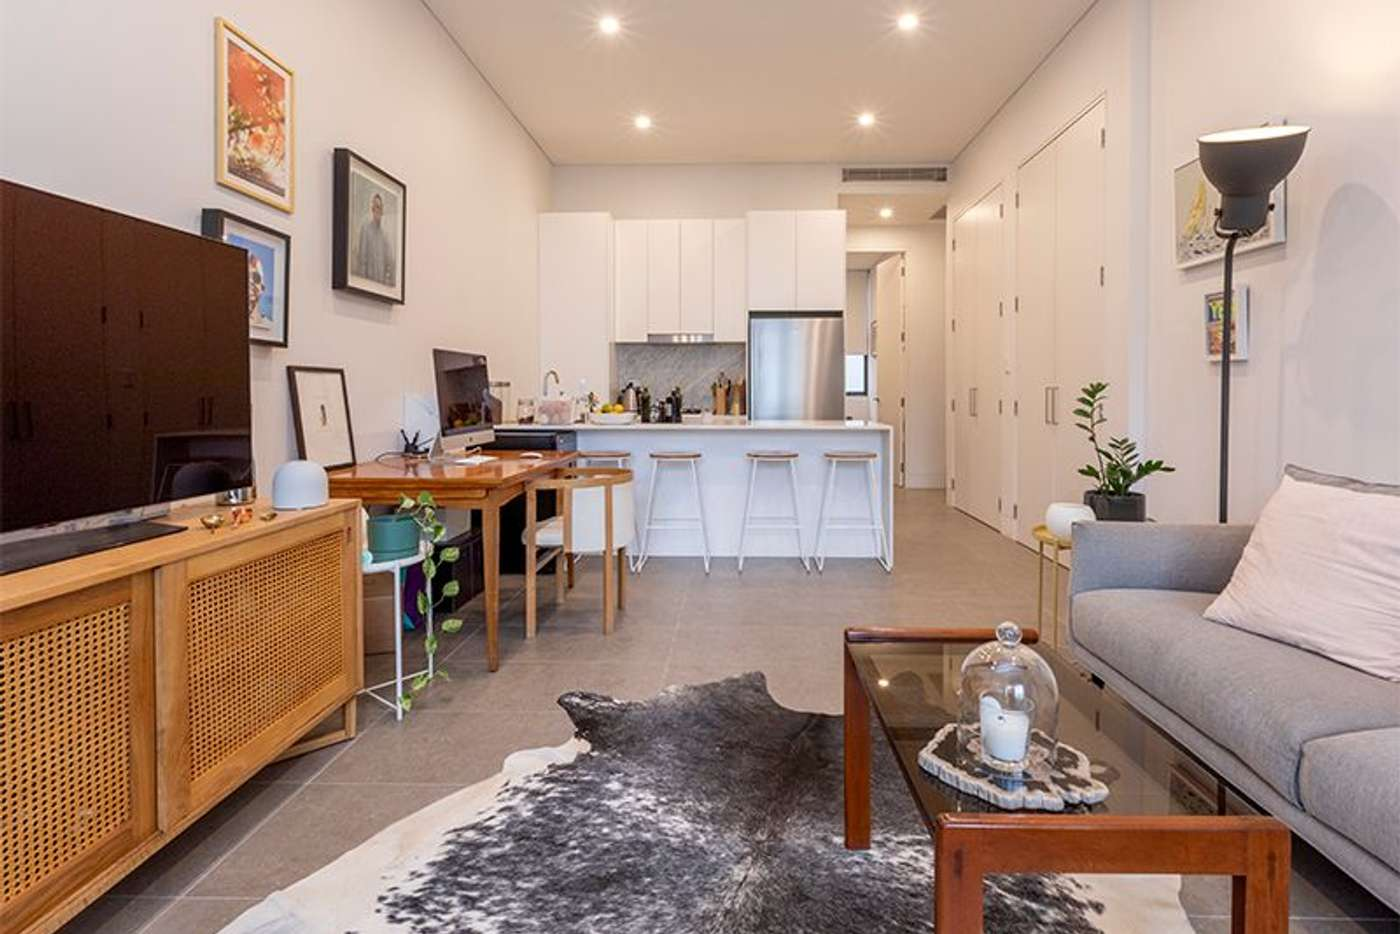 Main view of Homely apartment listing, 14/52 Pitt Street, Redfern NSW 2016